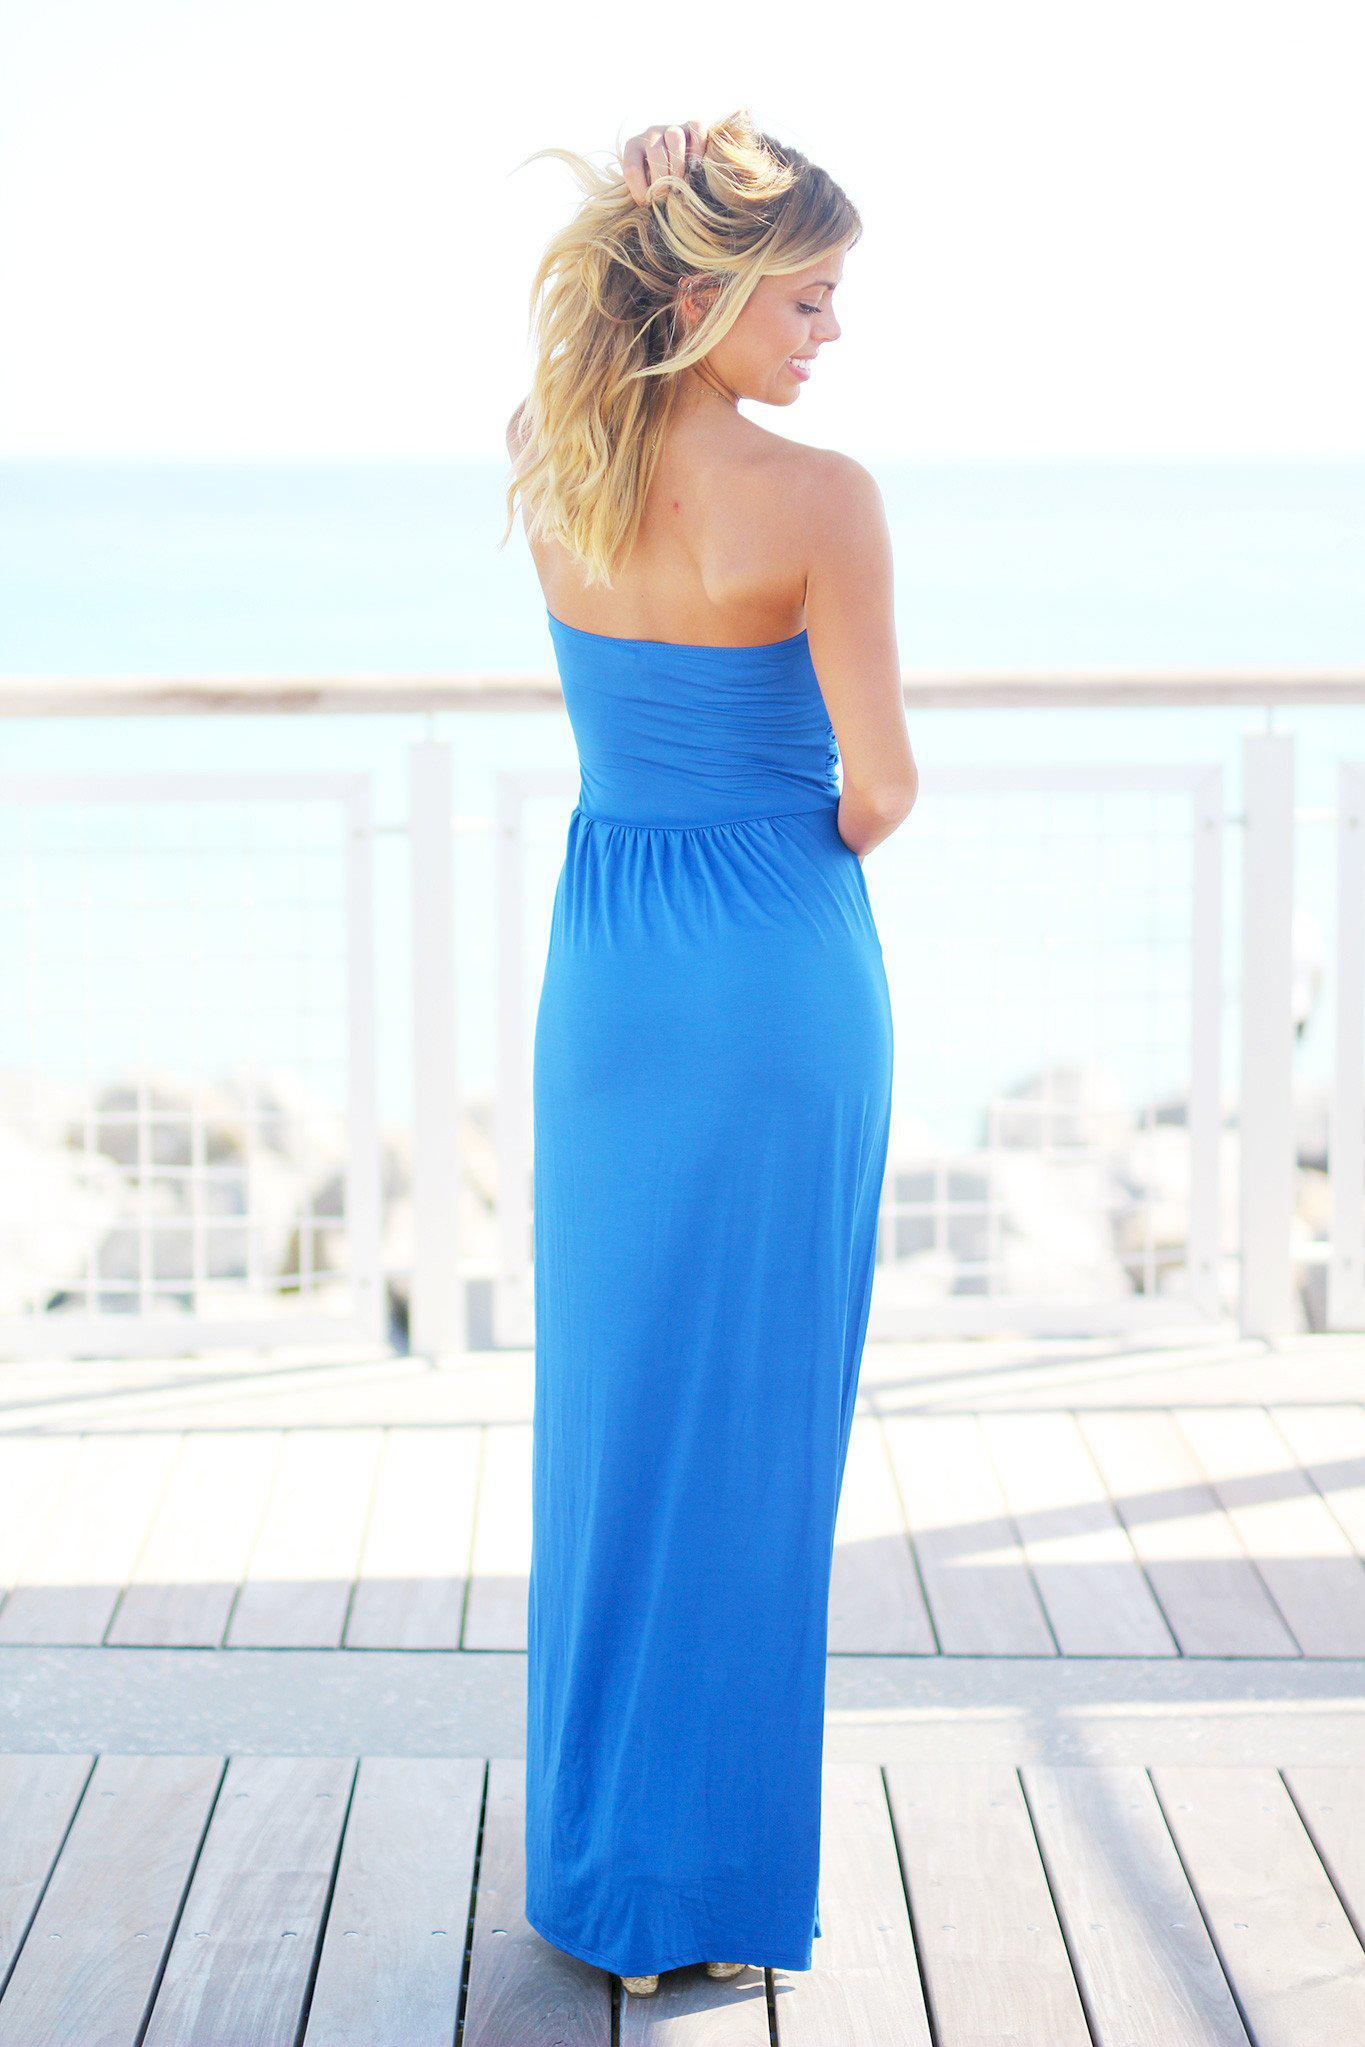 Strapless Royal Blue Maxi Dress with Pockets